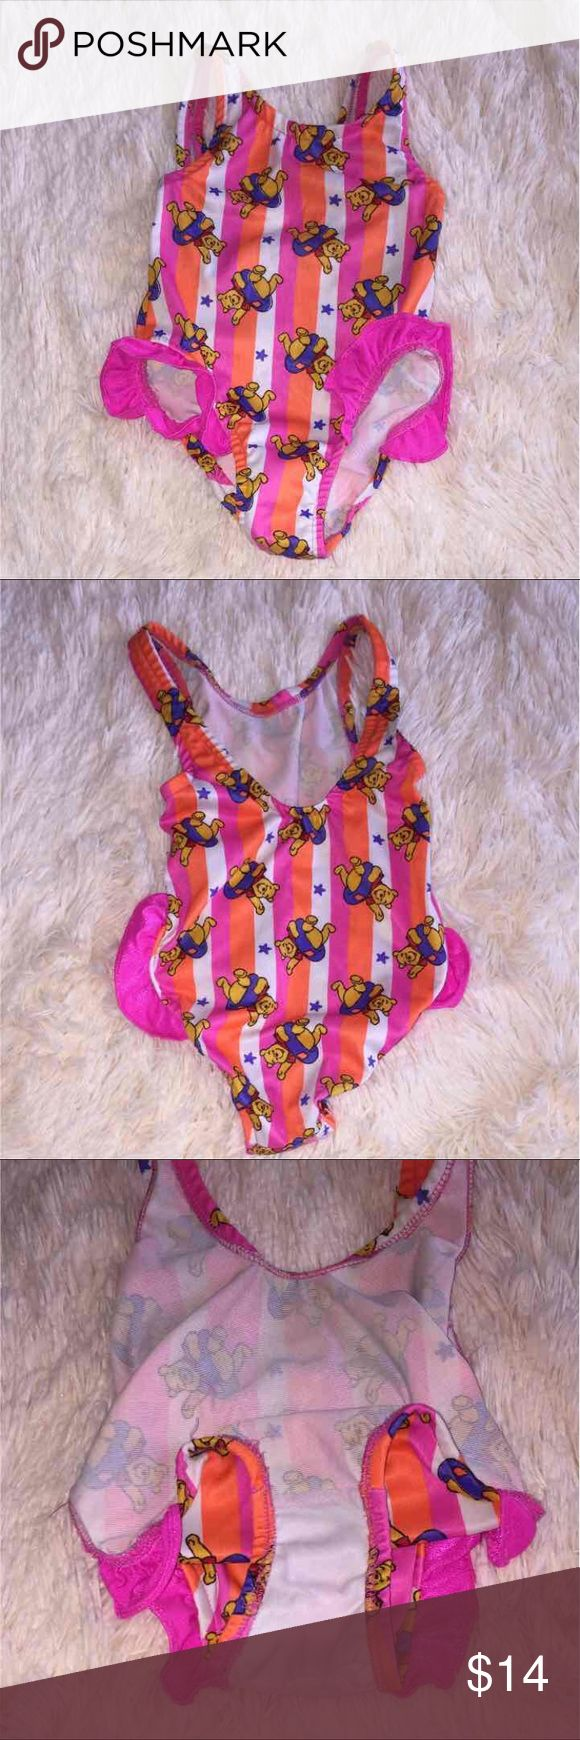 Winnie the Pooh Baby Girl Swim Suit 24MOS Disney Winnie the Pooh Size: 24 MOS No stains or holes Great condition  Little ruffles around the leg opening, lower in the back than the front  Orange, pink, white, and Winnie! :) Disney Swim One Piece